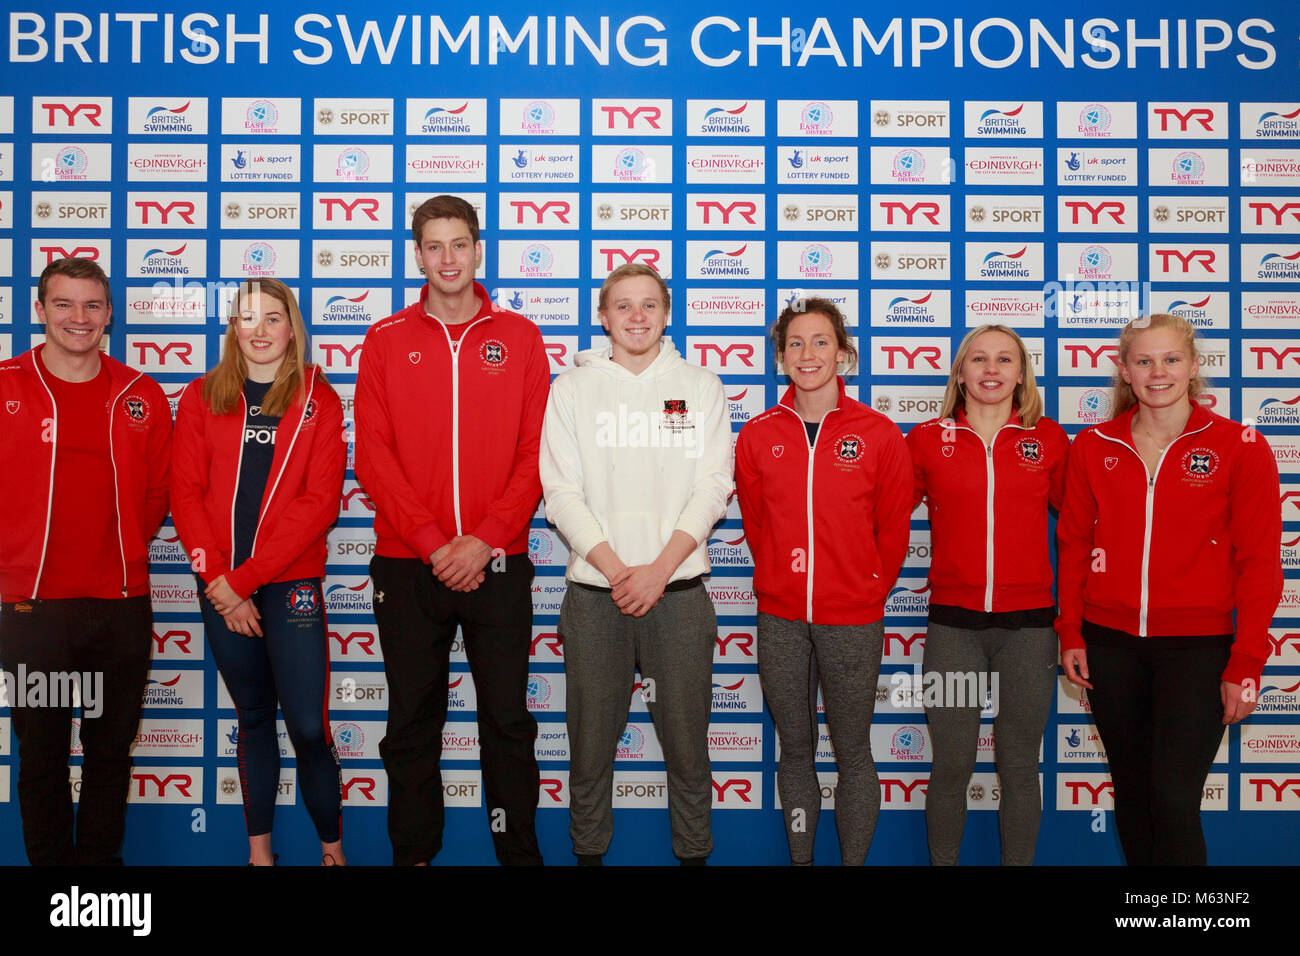 Edinburgh, Scotland 28th February 2018. Elite swimmers from the University of Edinburgh will be among those competing - Stock Image